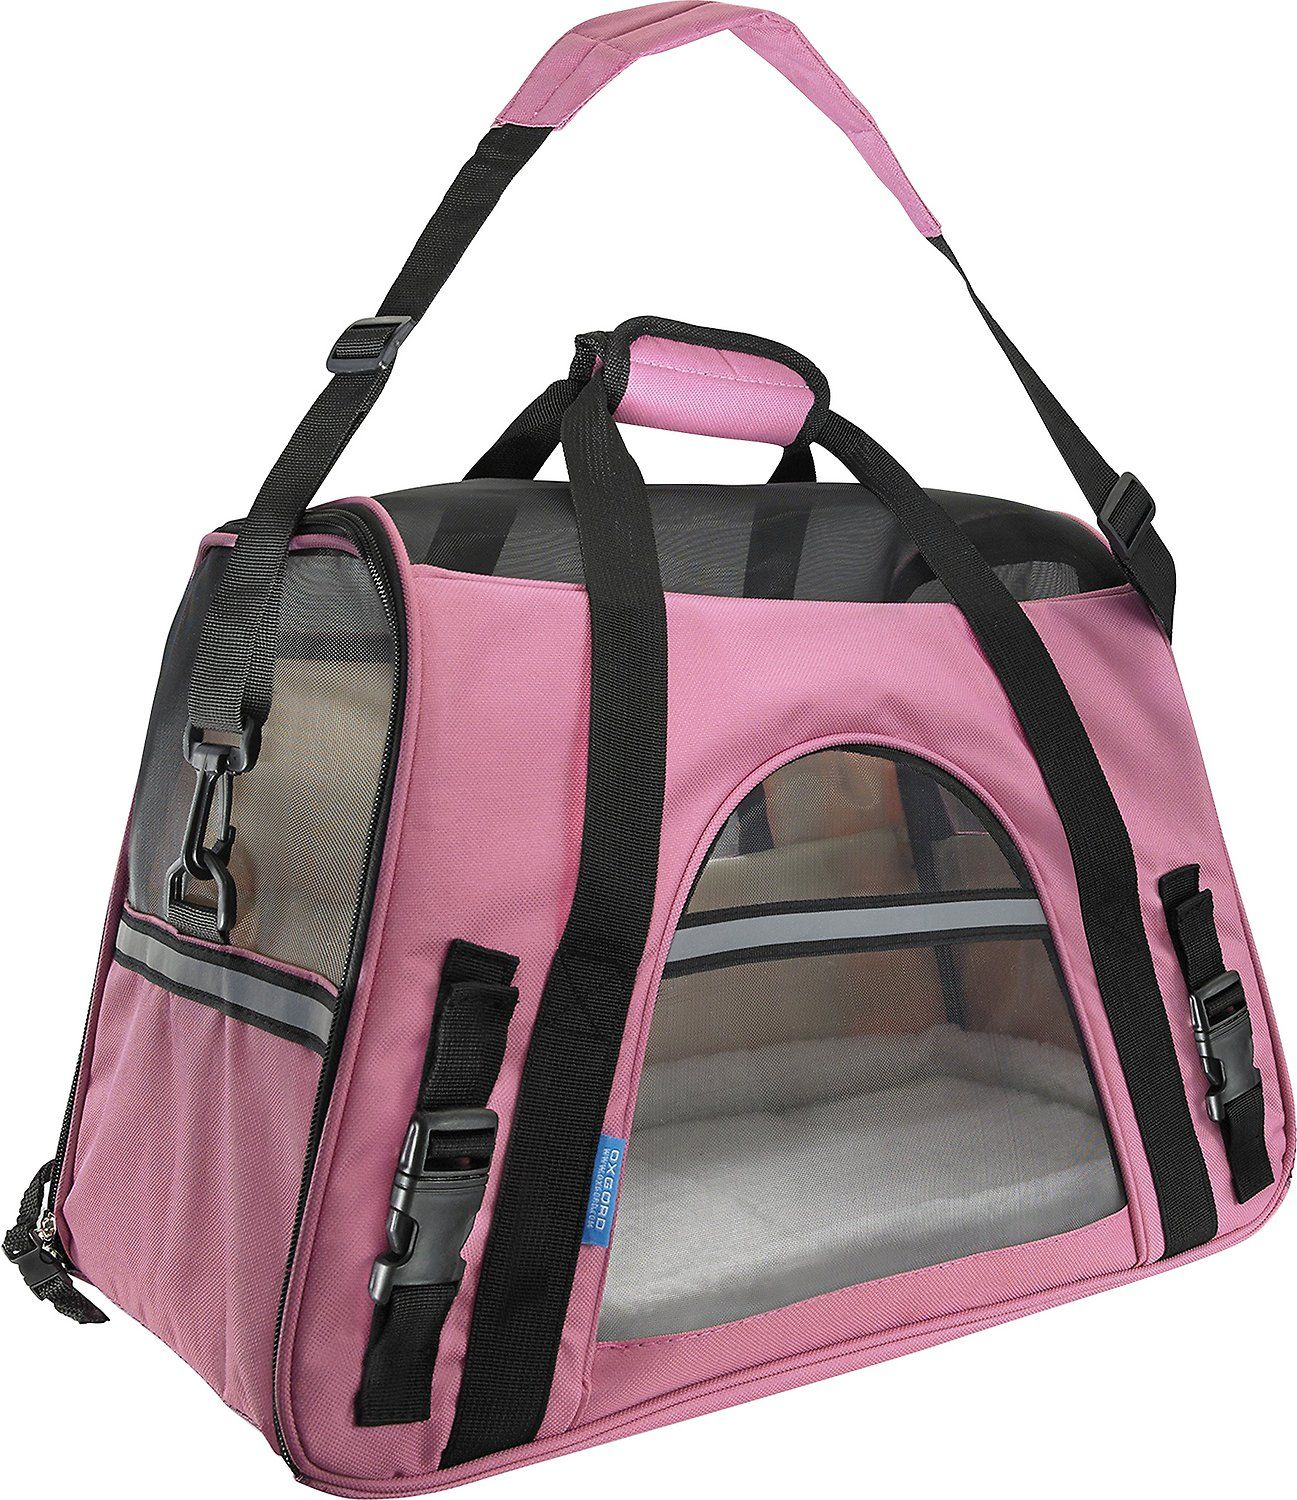 The airlineapproved OxGord Pet Carrier creates a safe and